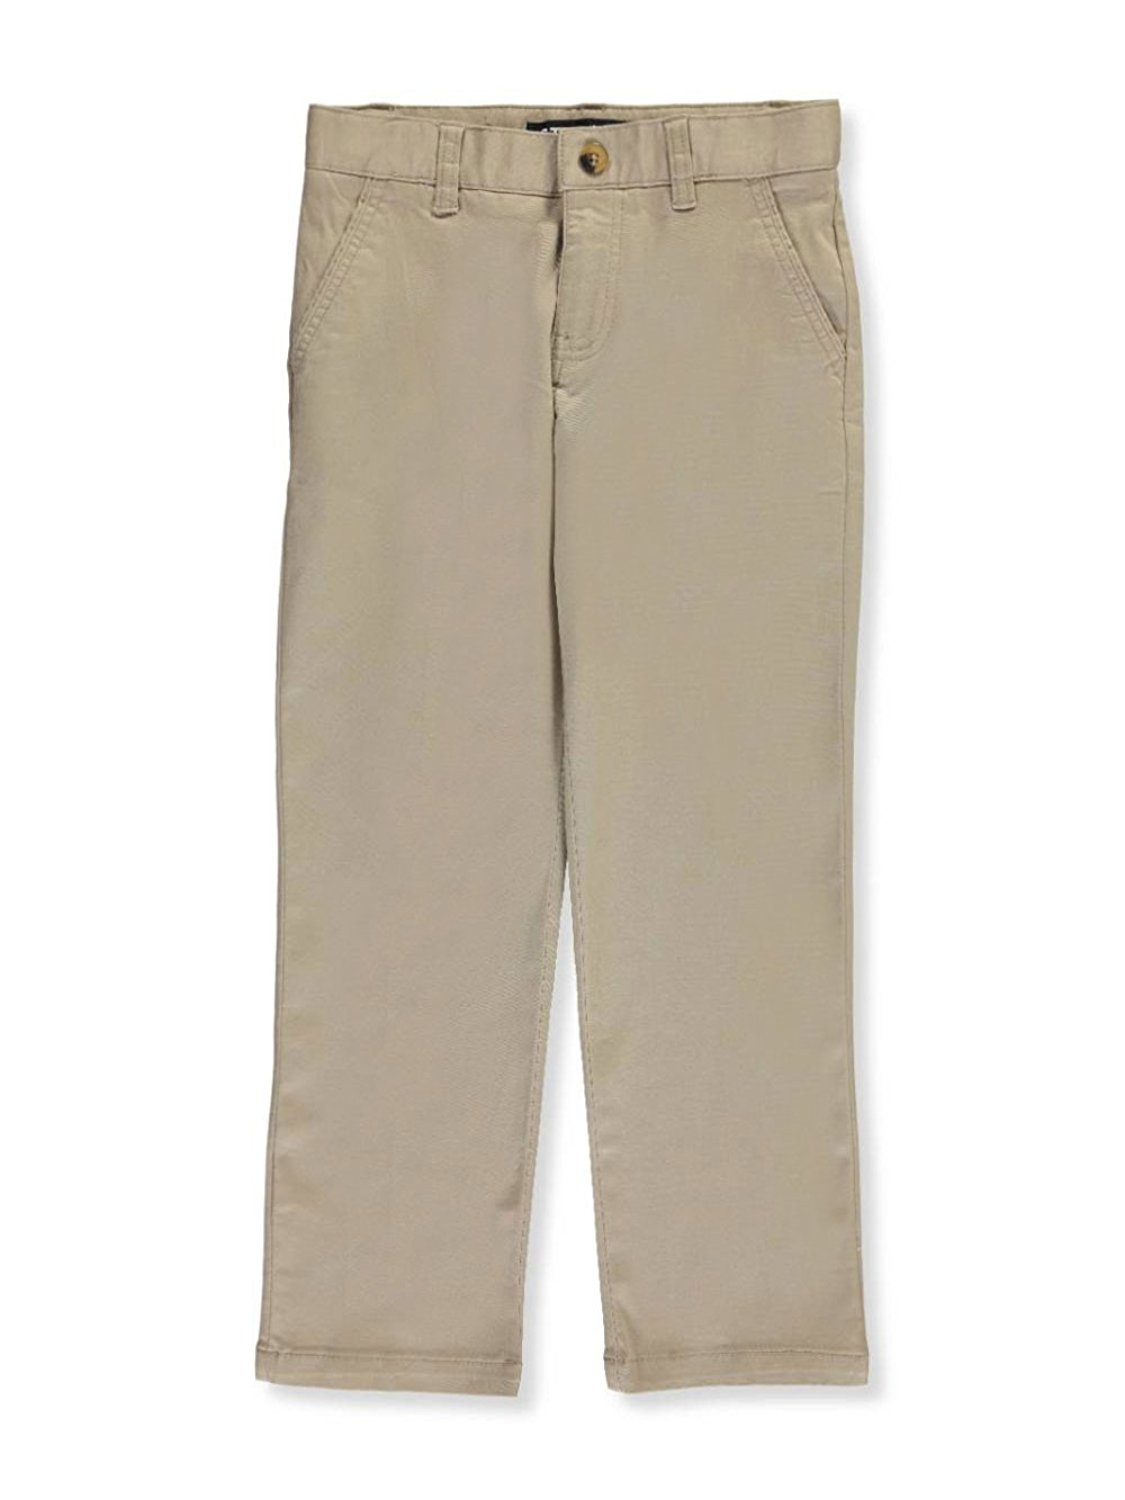 222d9617 Get Quotations · French Toast Big Boys' Twill Straight Fit Chino Pants -  Khaki,